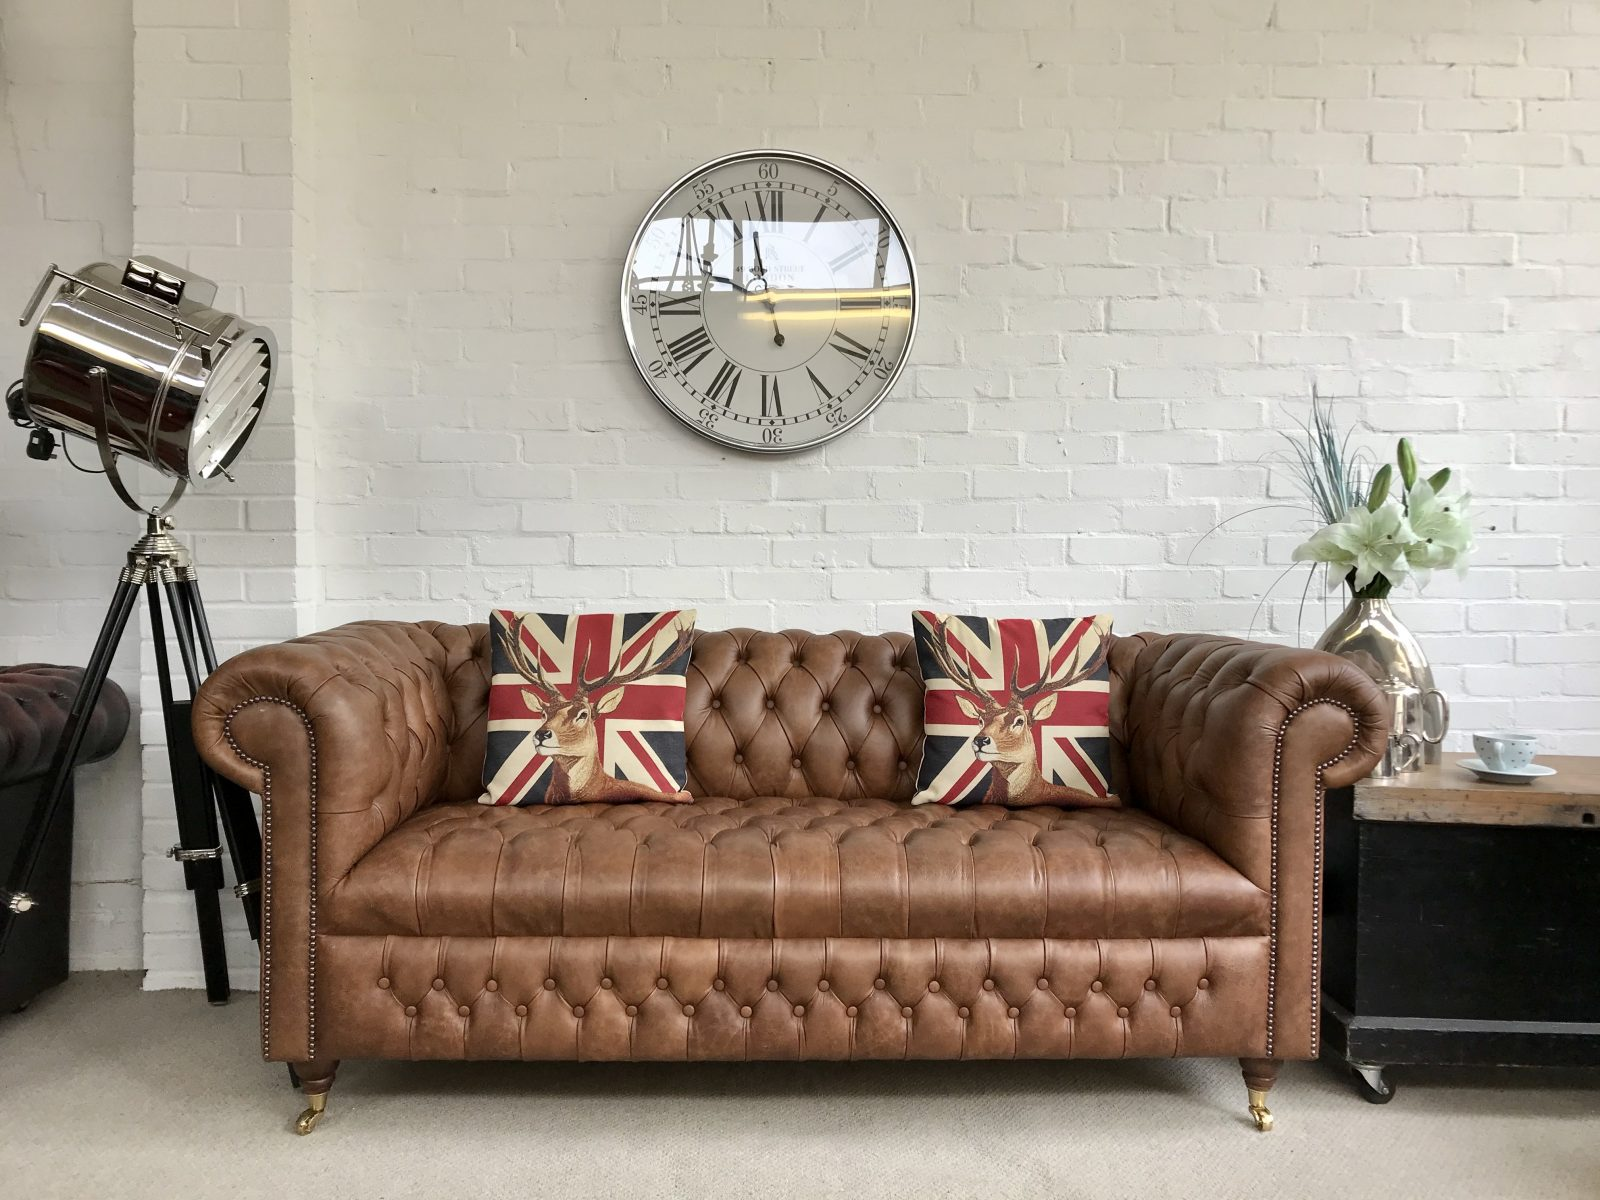 Saddle Tan Chesterfield Sofa. ( Matching 2 Seater Available )